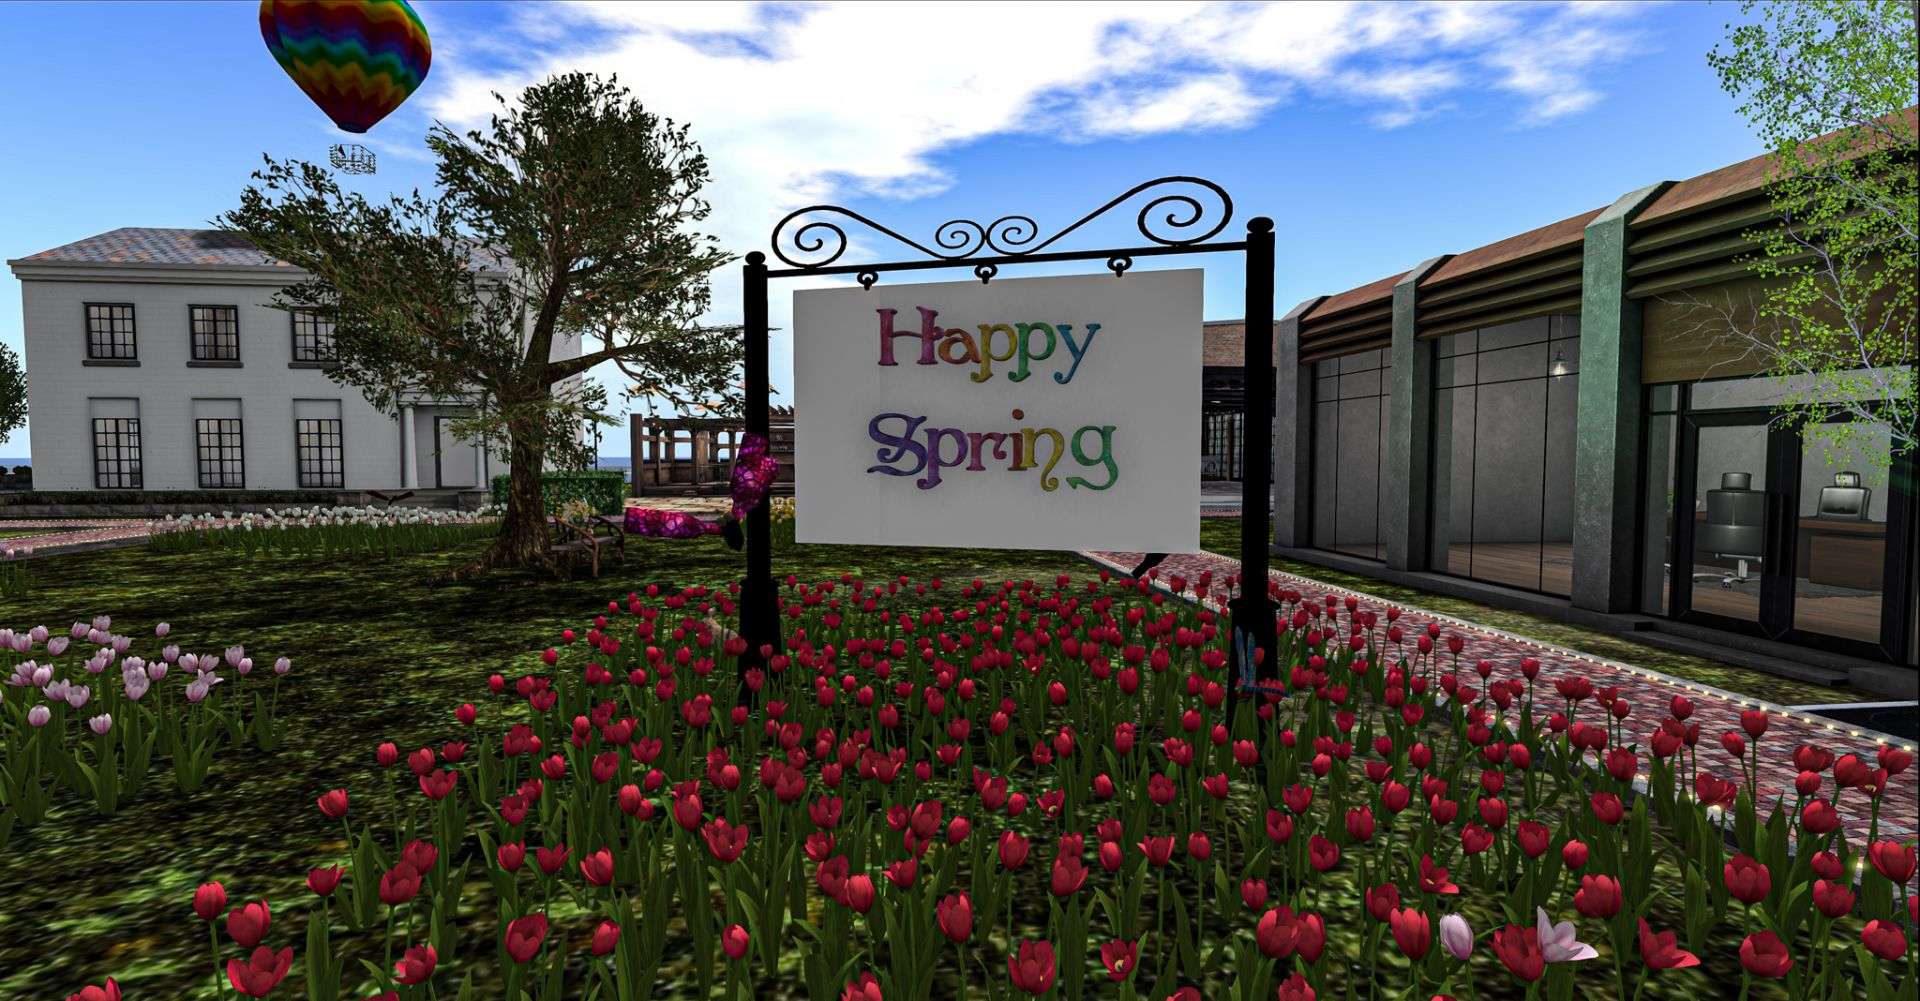 Spring Fling 2020 at Estoria in Second Life